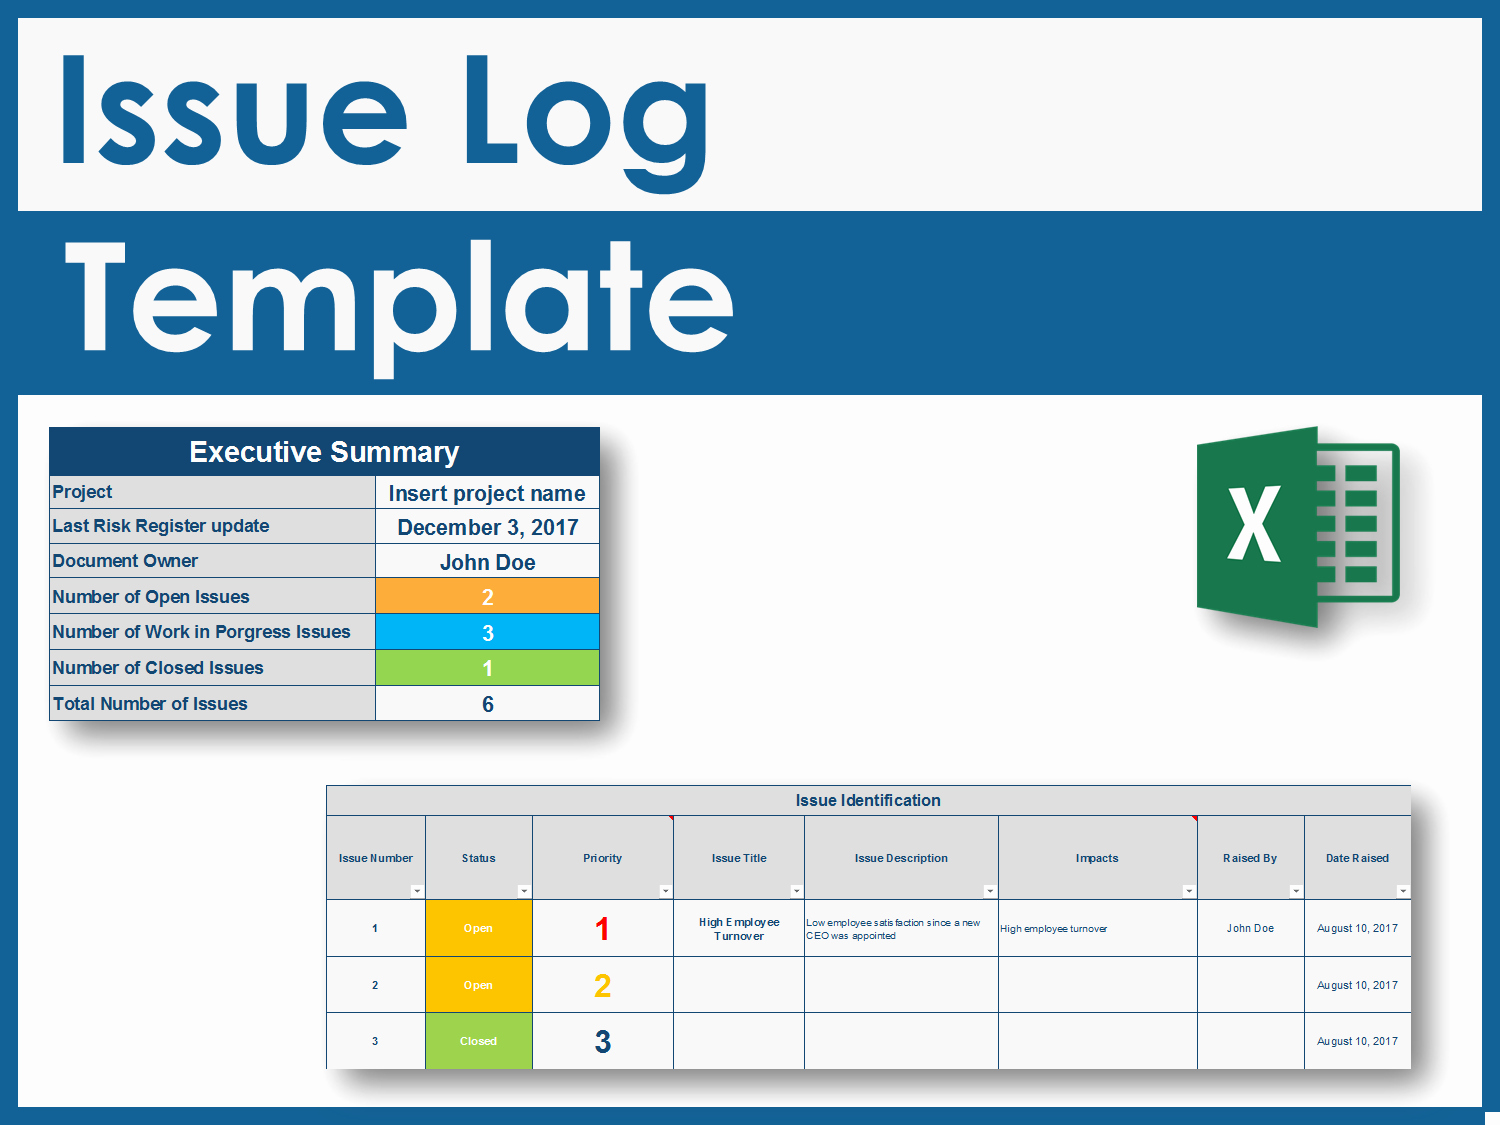 Issue Log Template Excel Inspirational Download An issue Log Excel Template